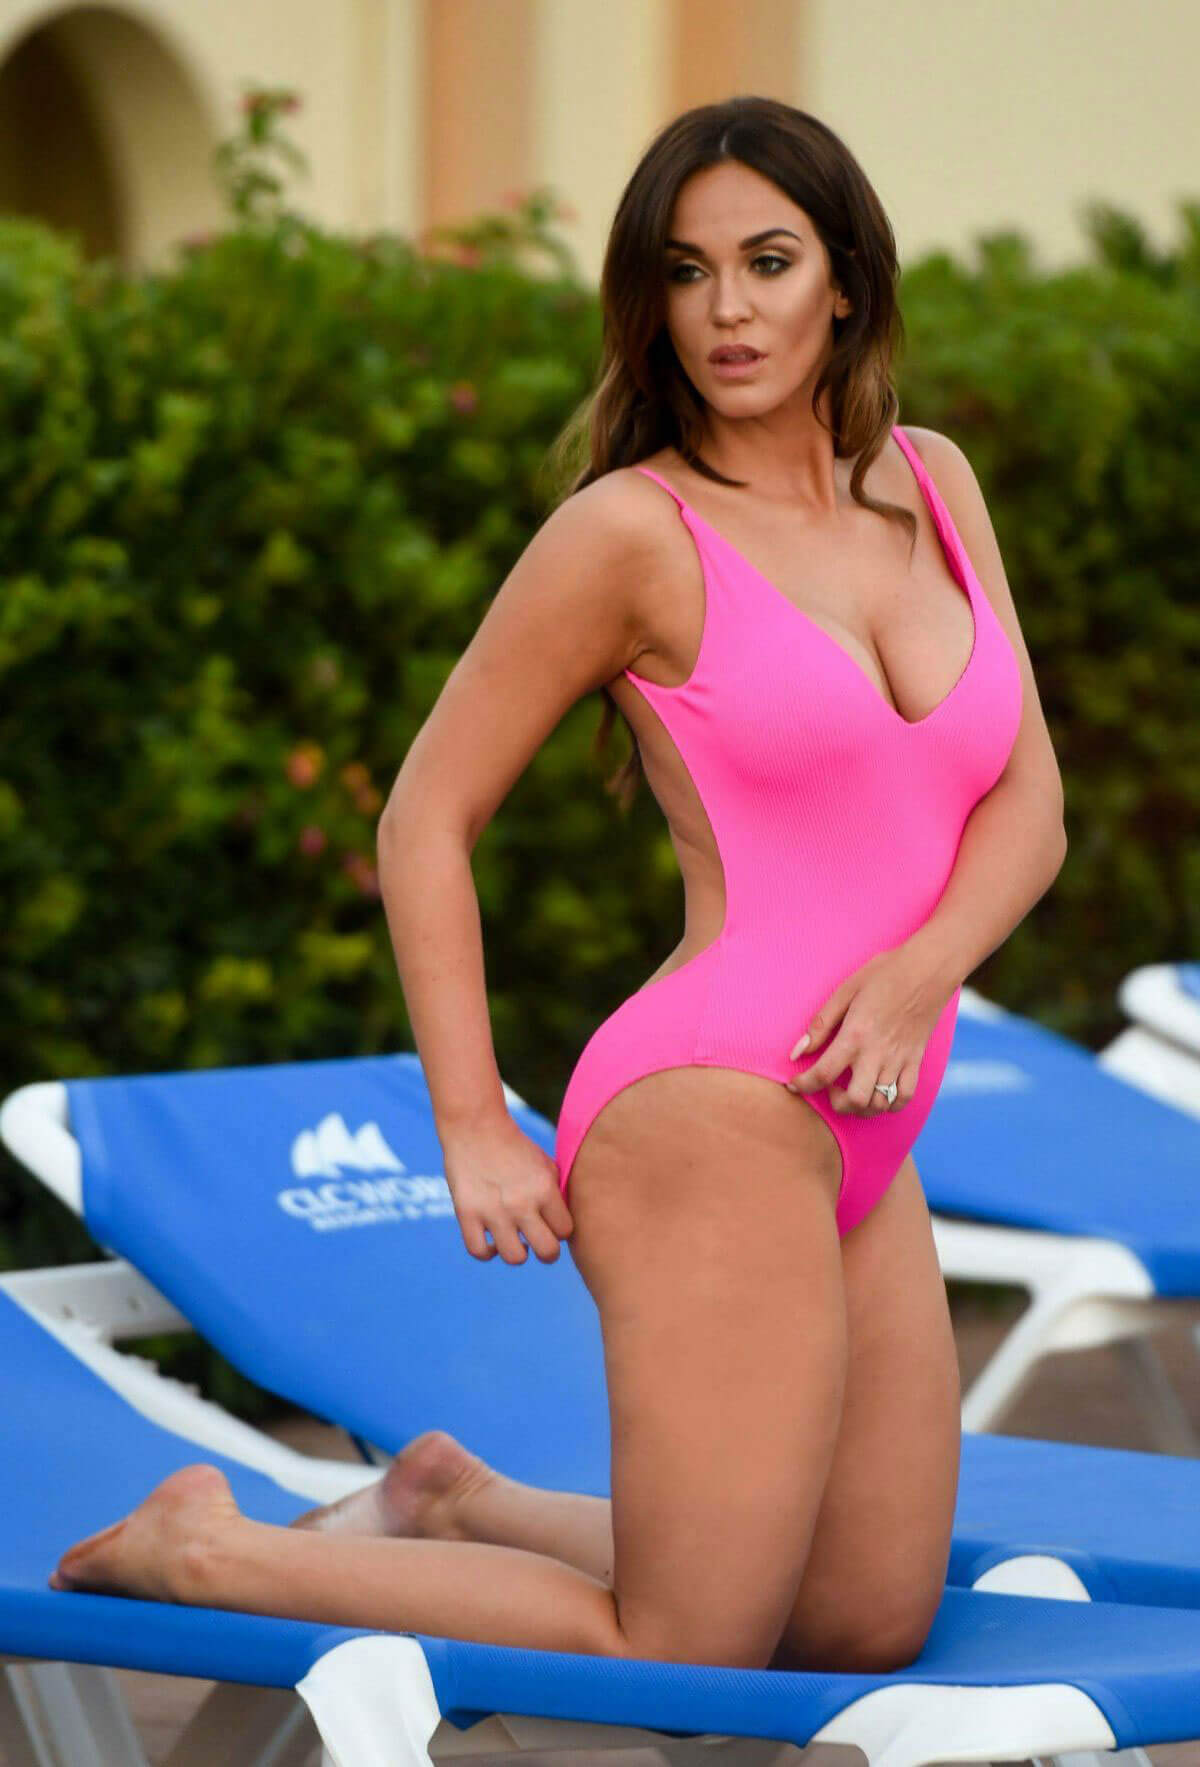 Vicky Pattison shows off Pink Swimsuit ata Pool in Marbella